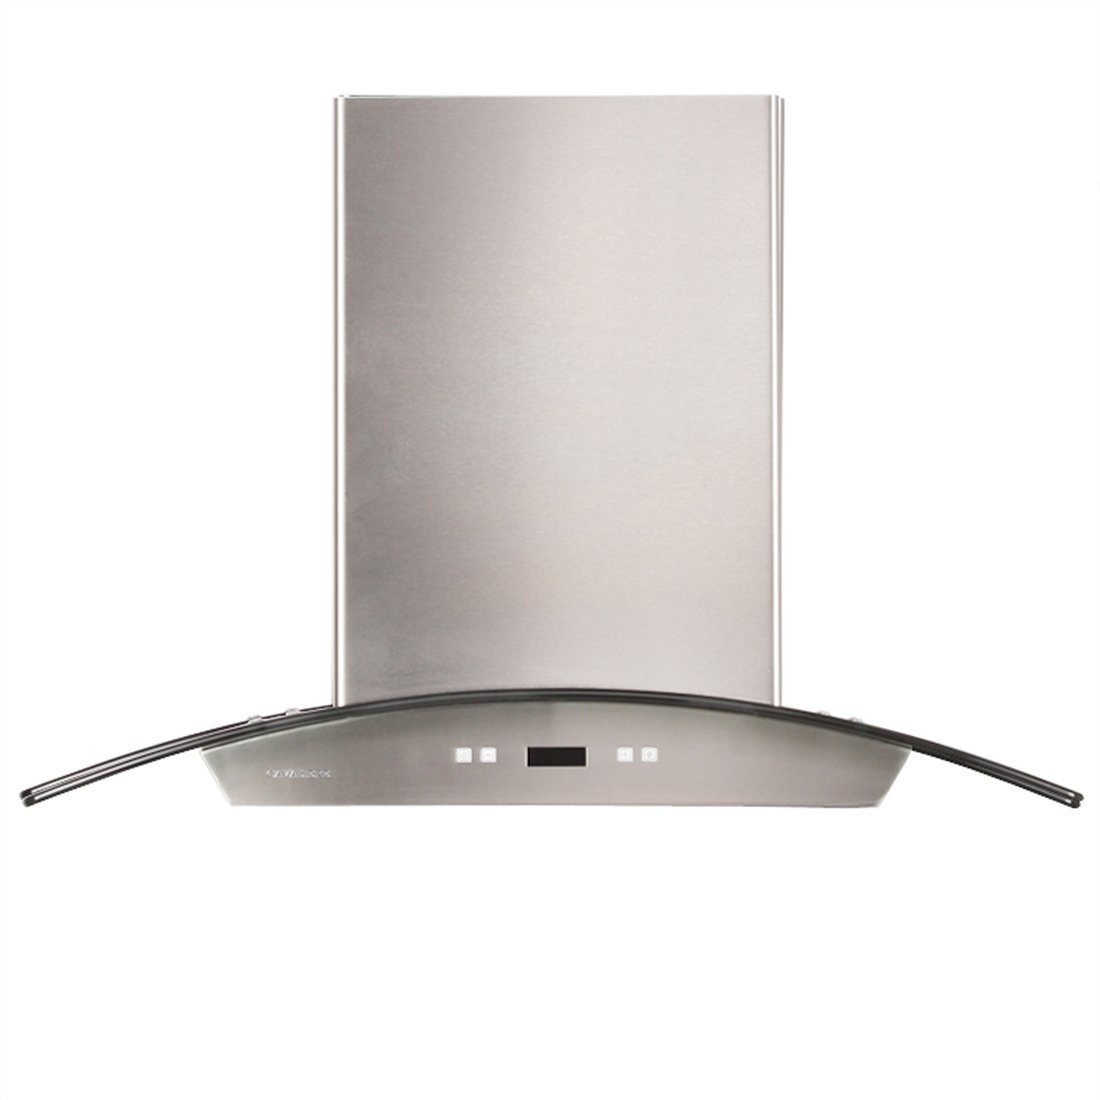 CAVALIERE 36'' Wall Mounted Stainless Steel / Glass Kitchen Range Hood 900 CFM SV218D-36 by CAVALIERE